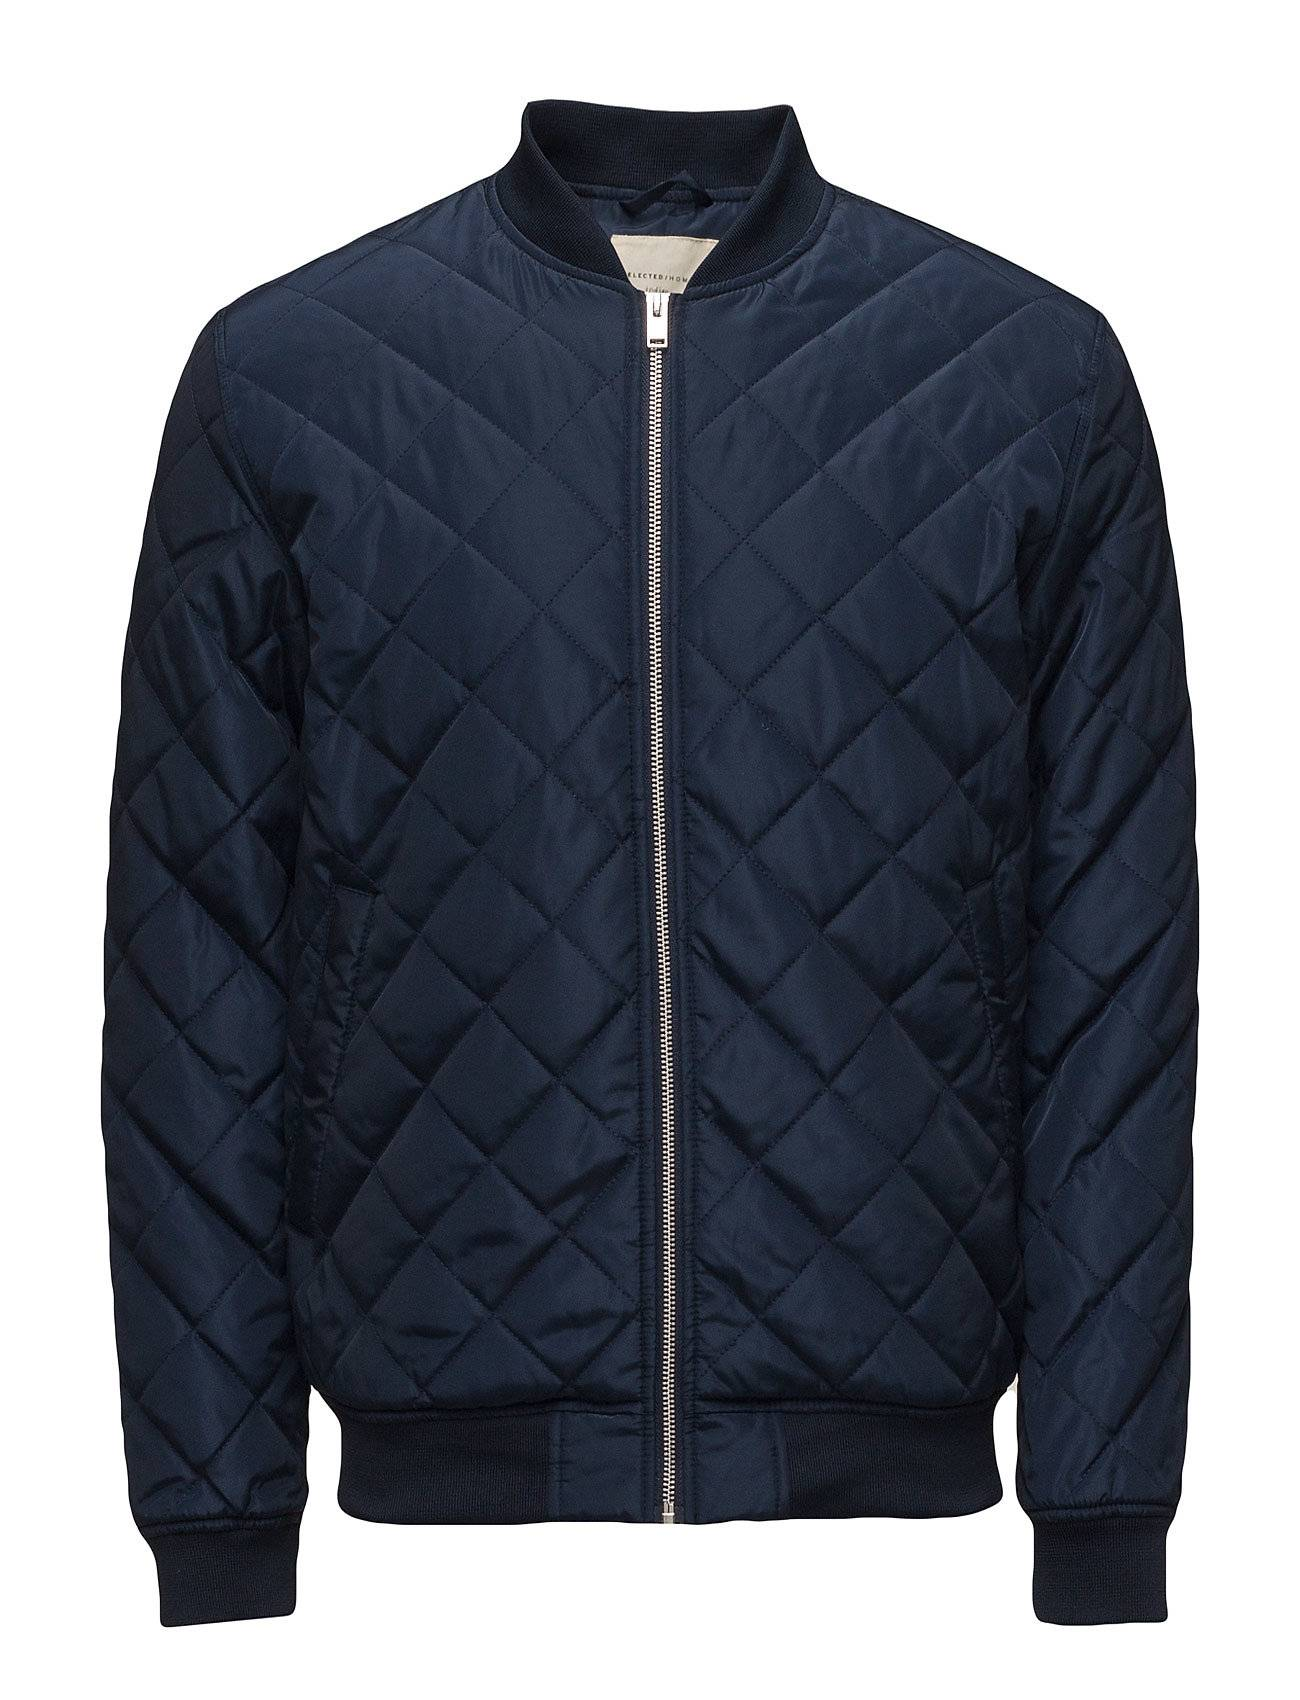 Selected Homme Shxpeter Quilted Bomber Jacket